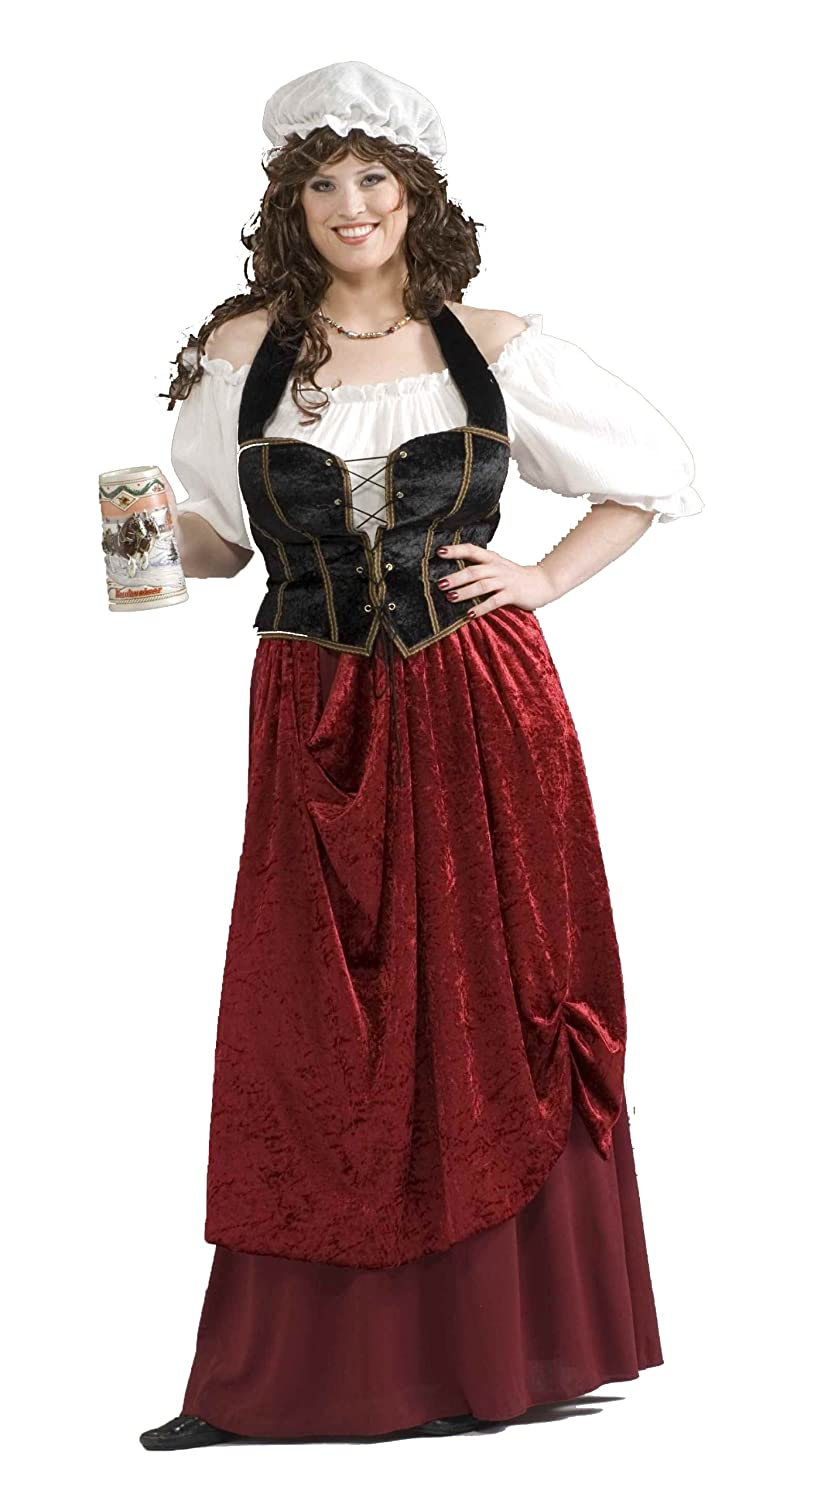 Download image 1700s woman portrait pc android iphone and ipad - Amazon Com Forum Novelties Women S Tavern Wench Plus Size Costume Multicolor Plus Clothing